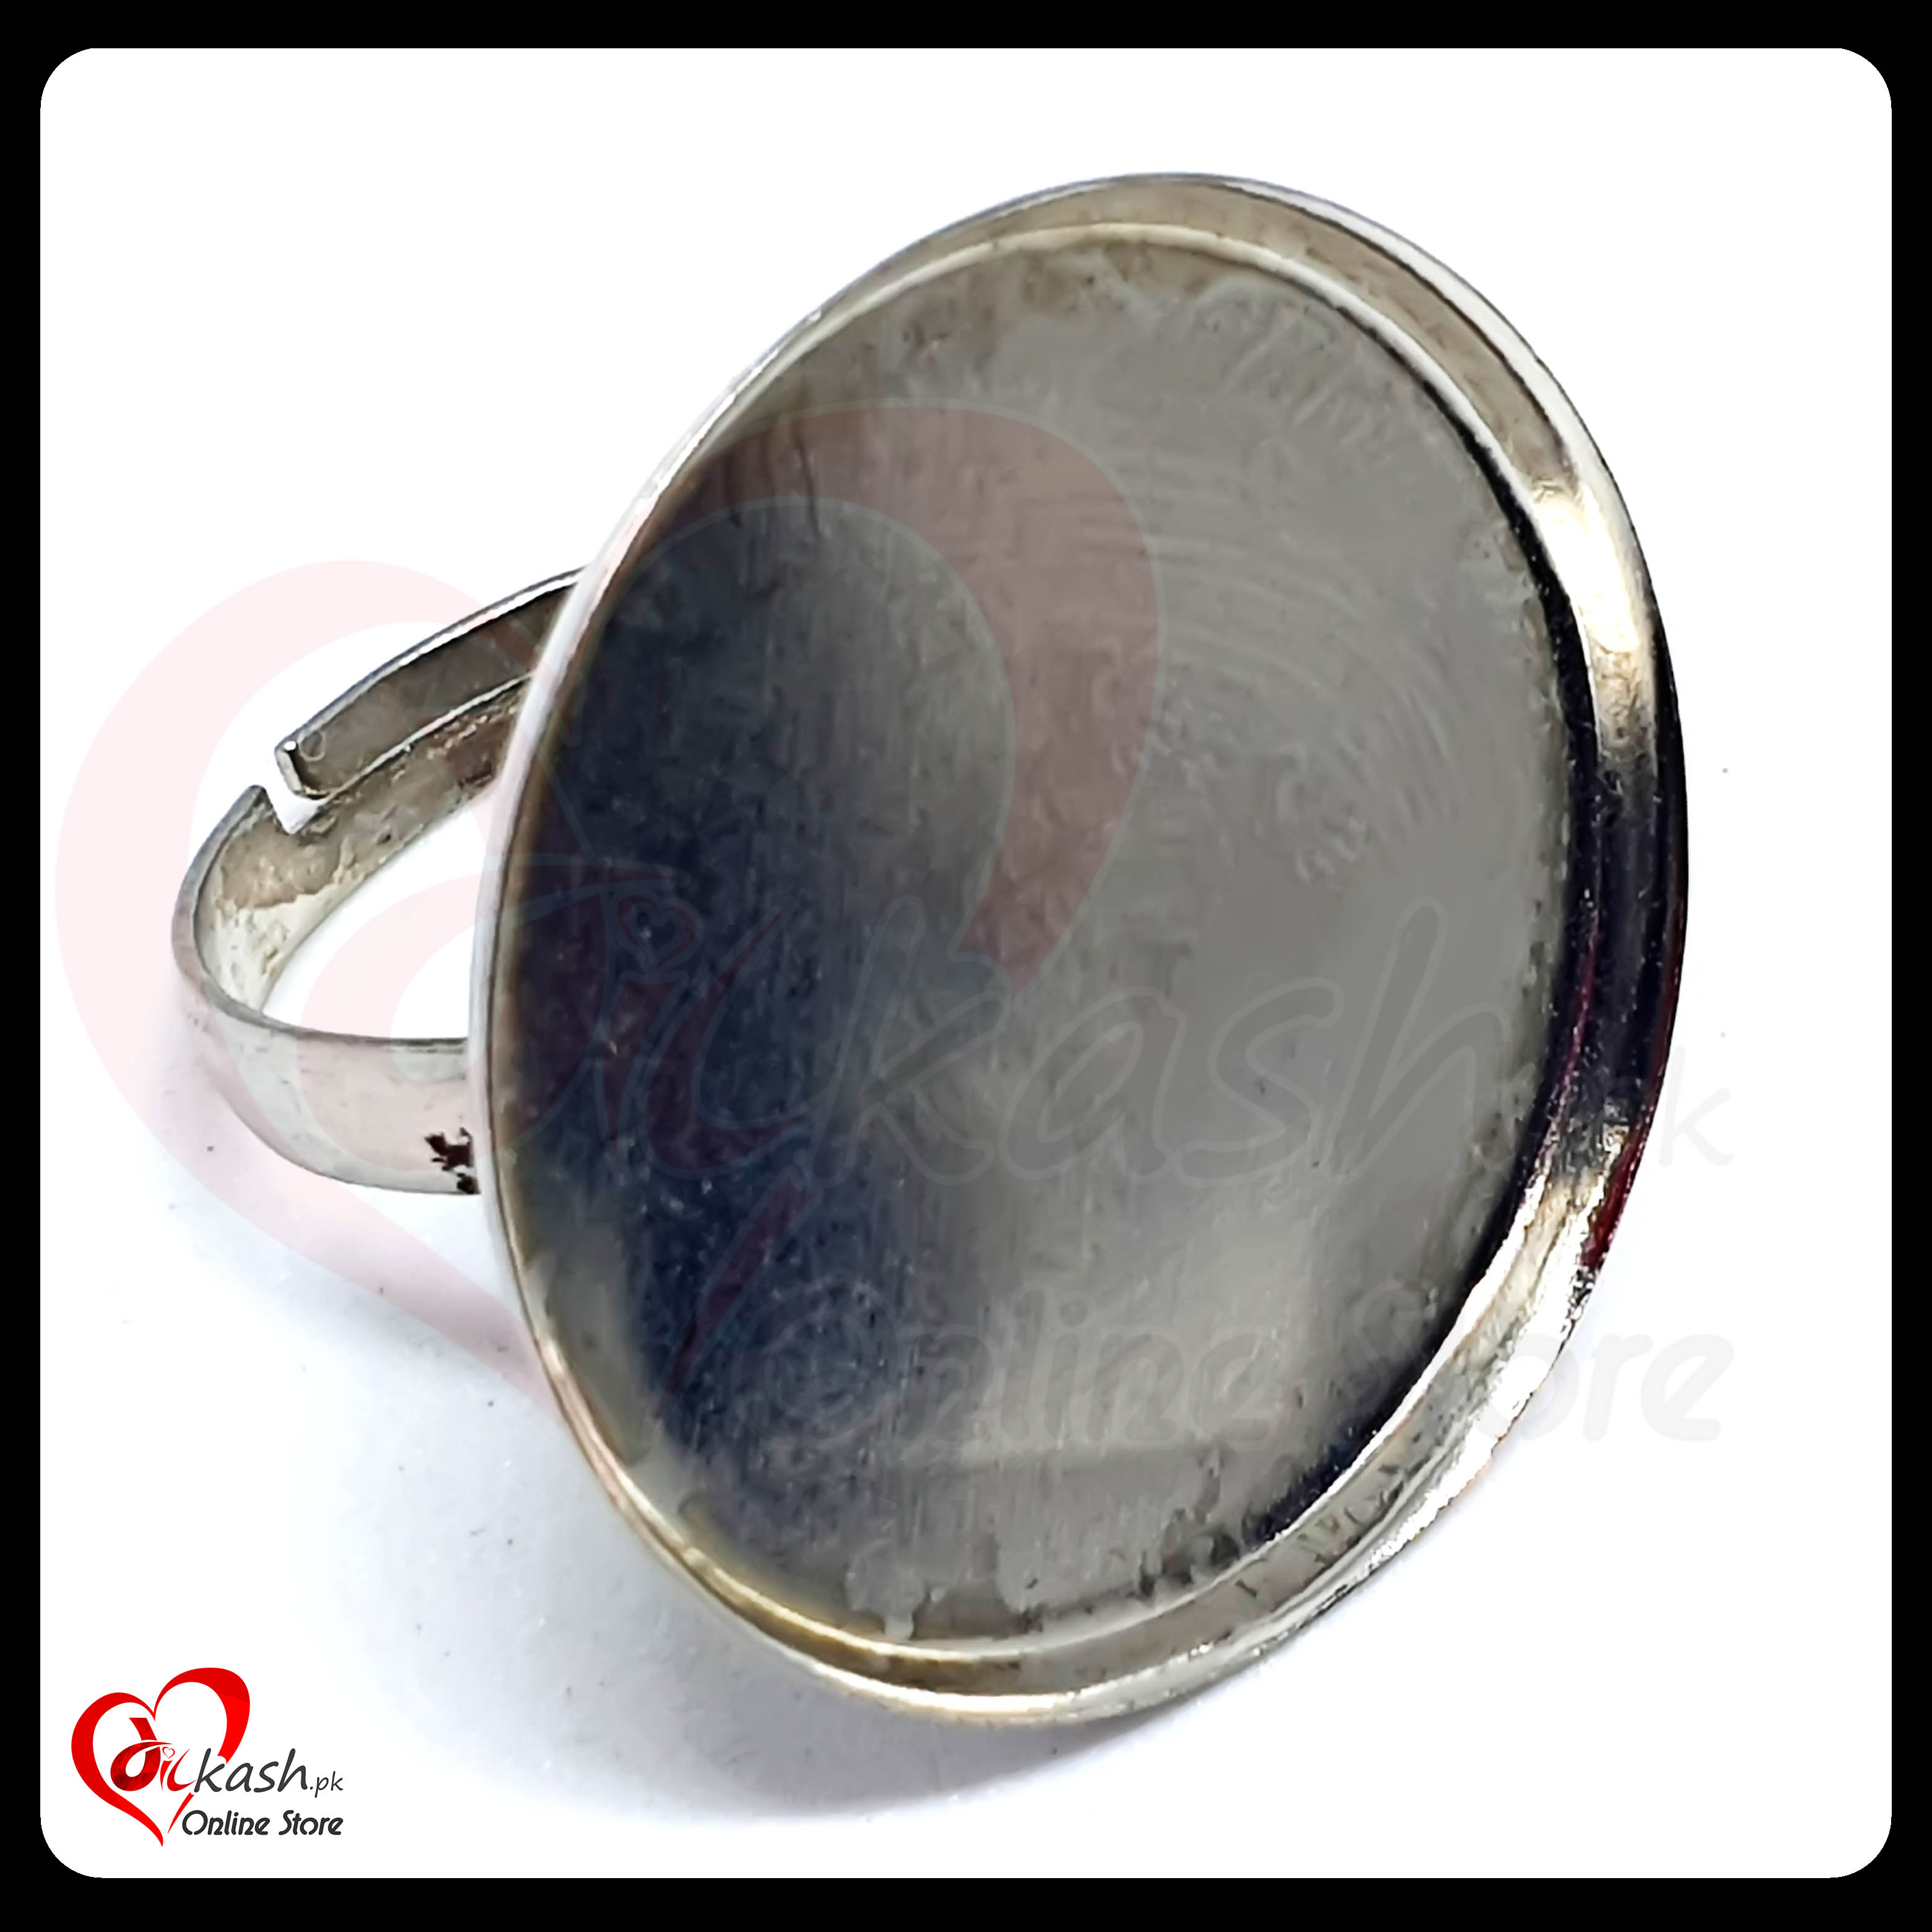 Jewelry Rings Base - 1 Inch Round Ring Base with Border - Silver